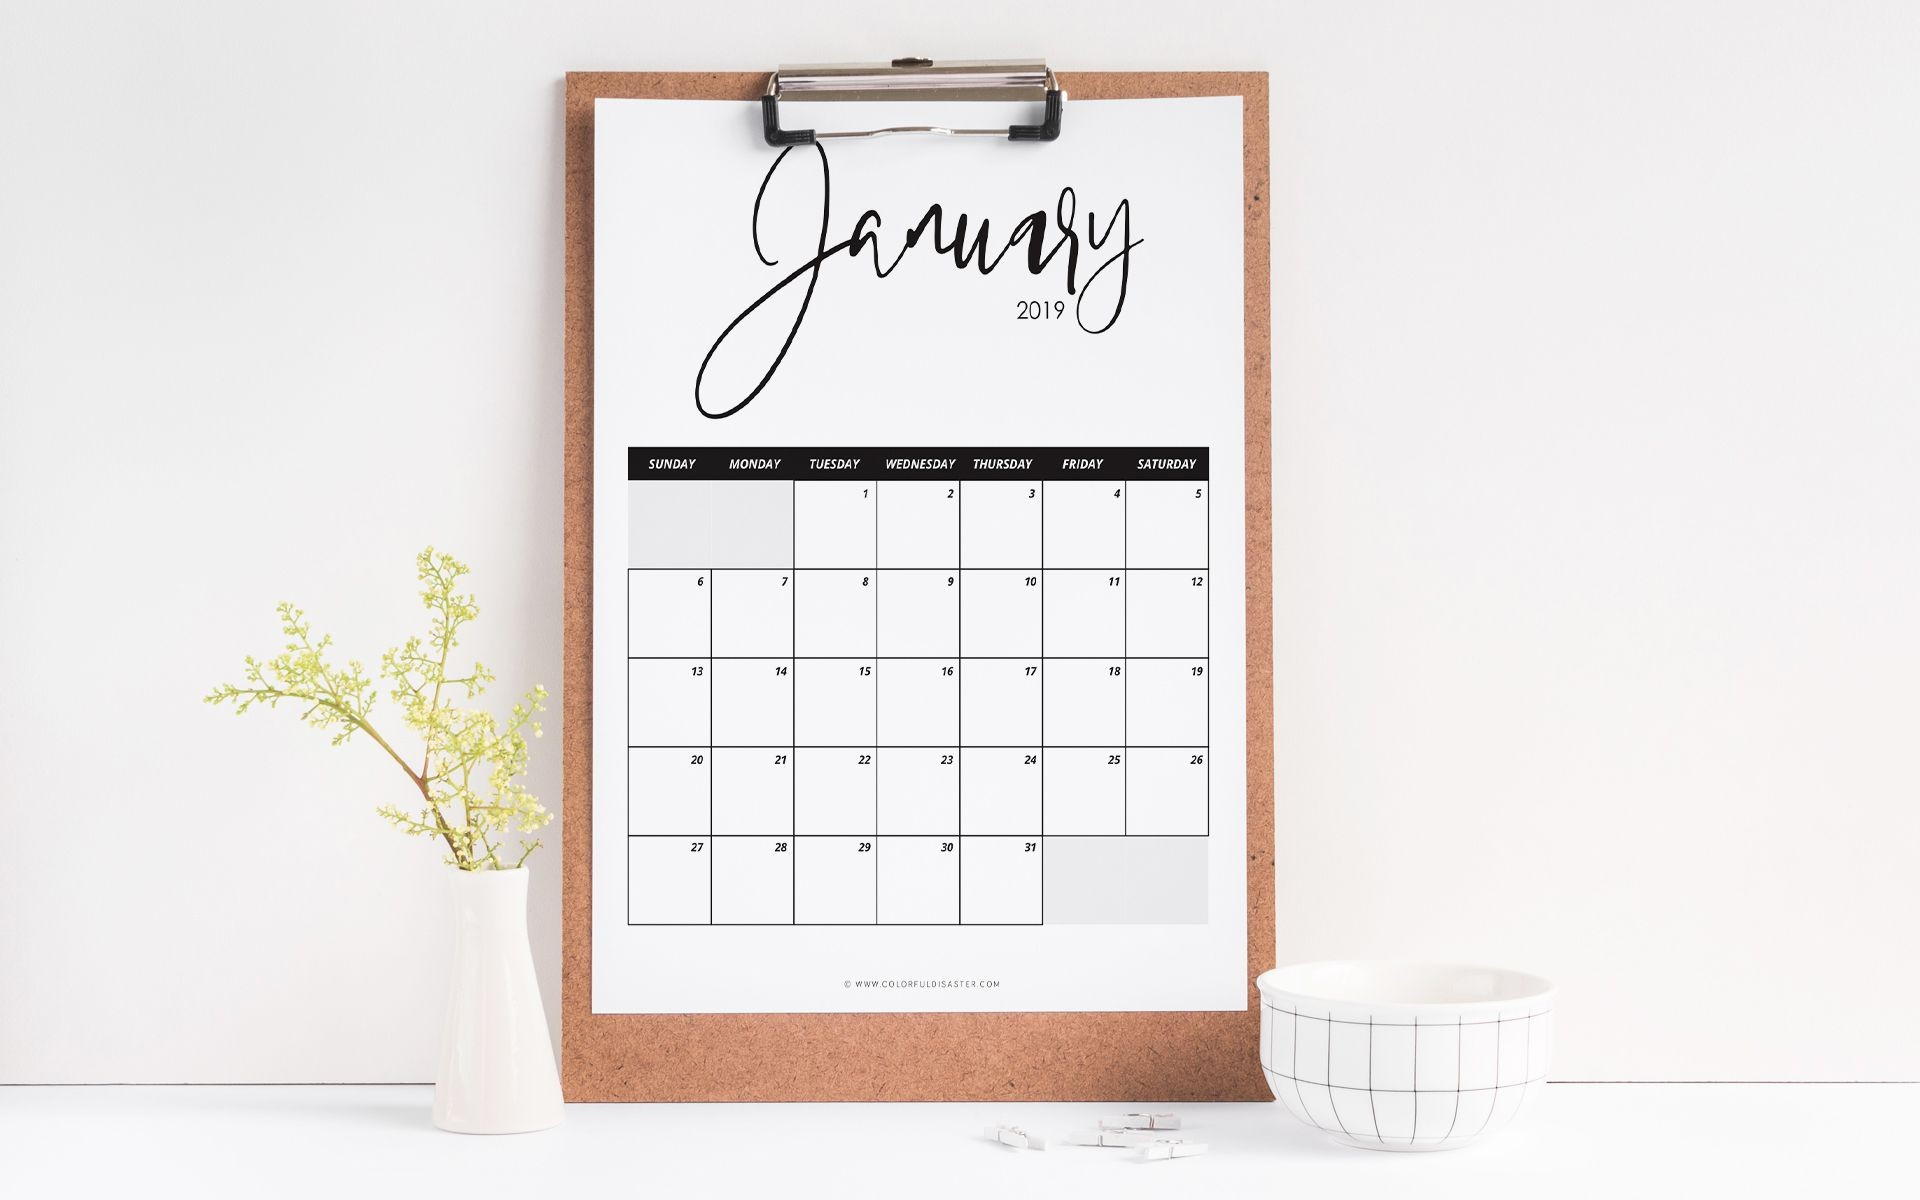 March 2019 Calendar Landscape Más Reciente 10 Stylish Free Printable Calendars for 2019 Of March 2019 Calendar Landscape Más Recientes 2010 Calendar